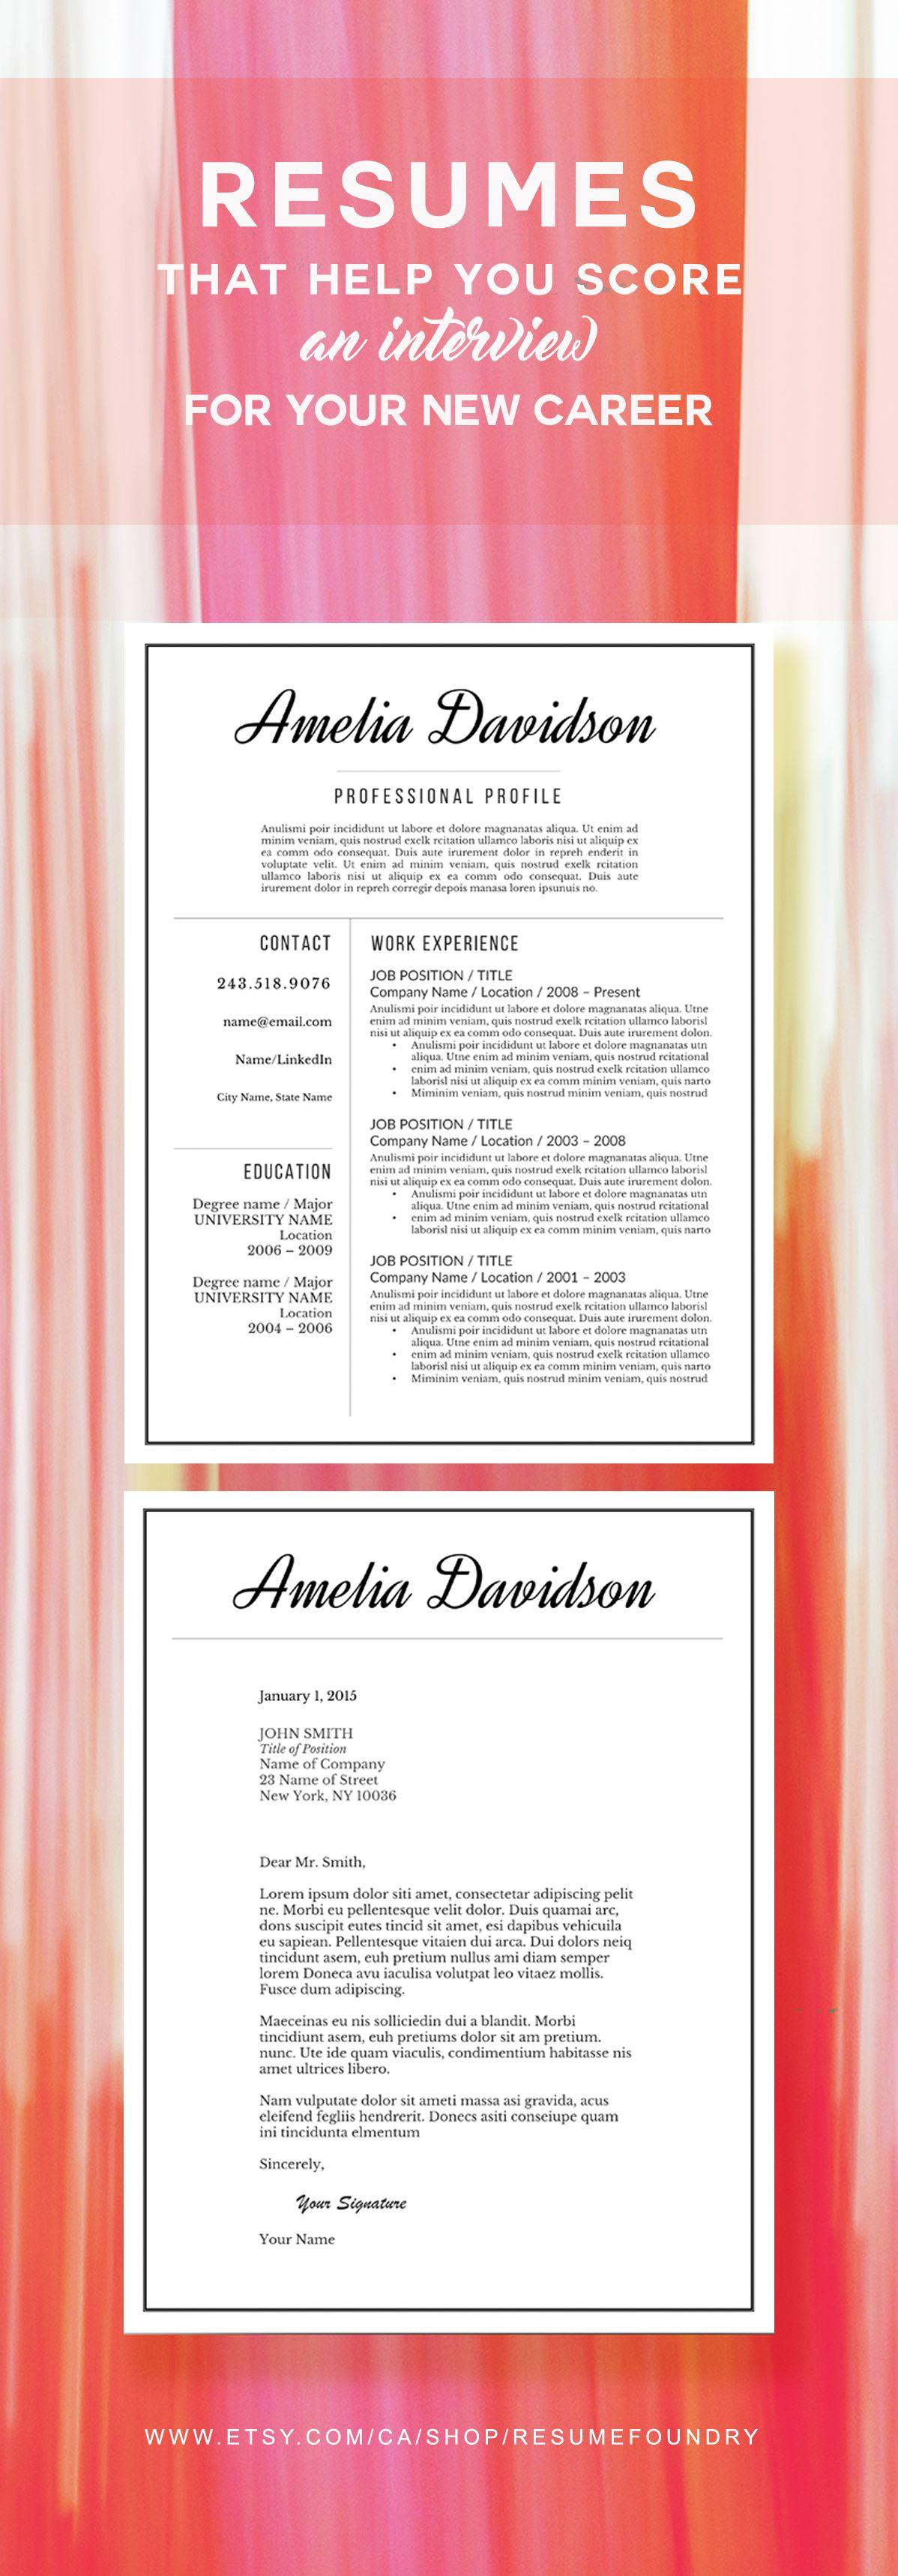 Elegant resume template, for use with Microsoft Word.   Resume ...